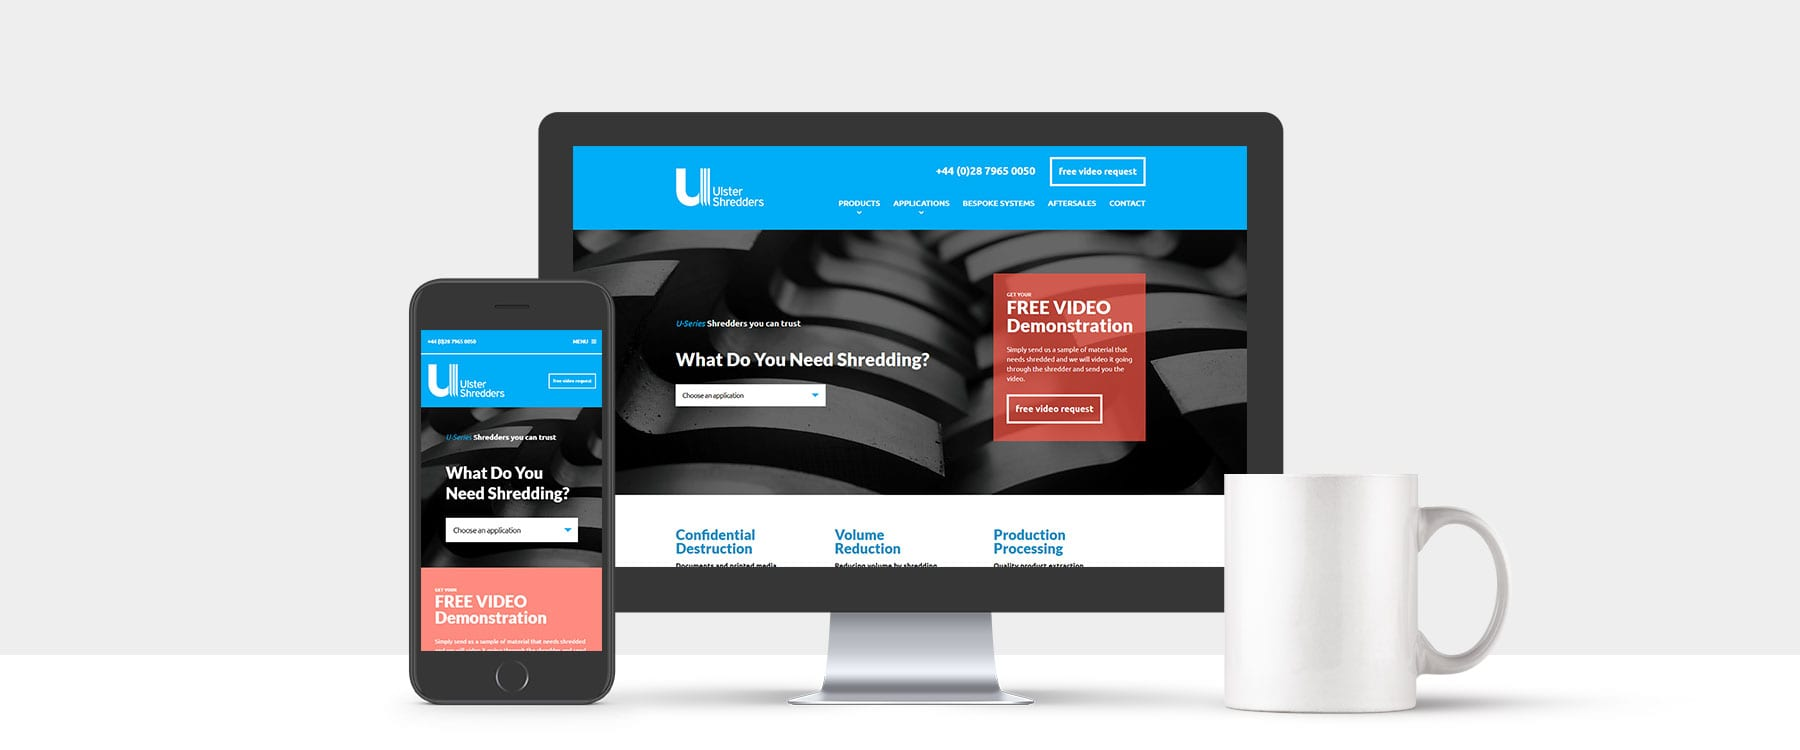 Brand New Contemporary and Innovative Website for Ulster Shredders Image